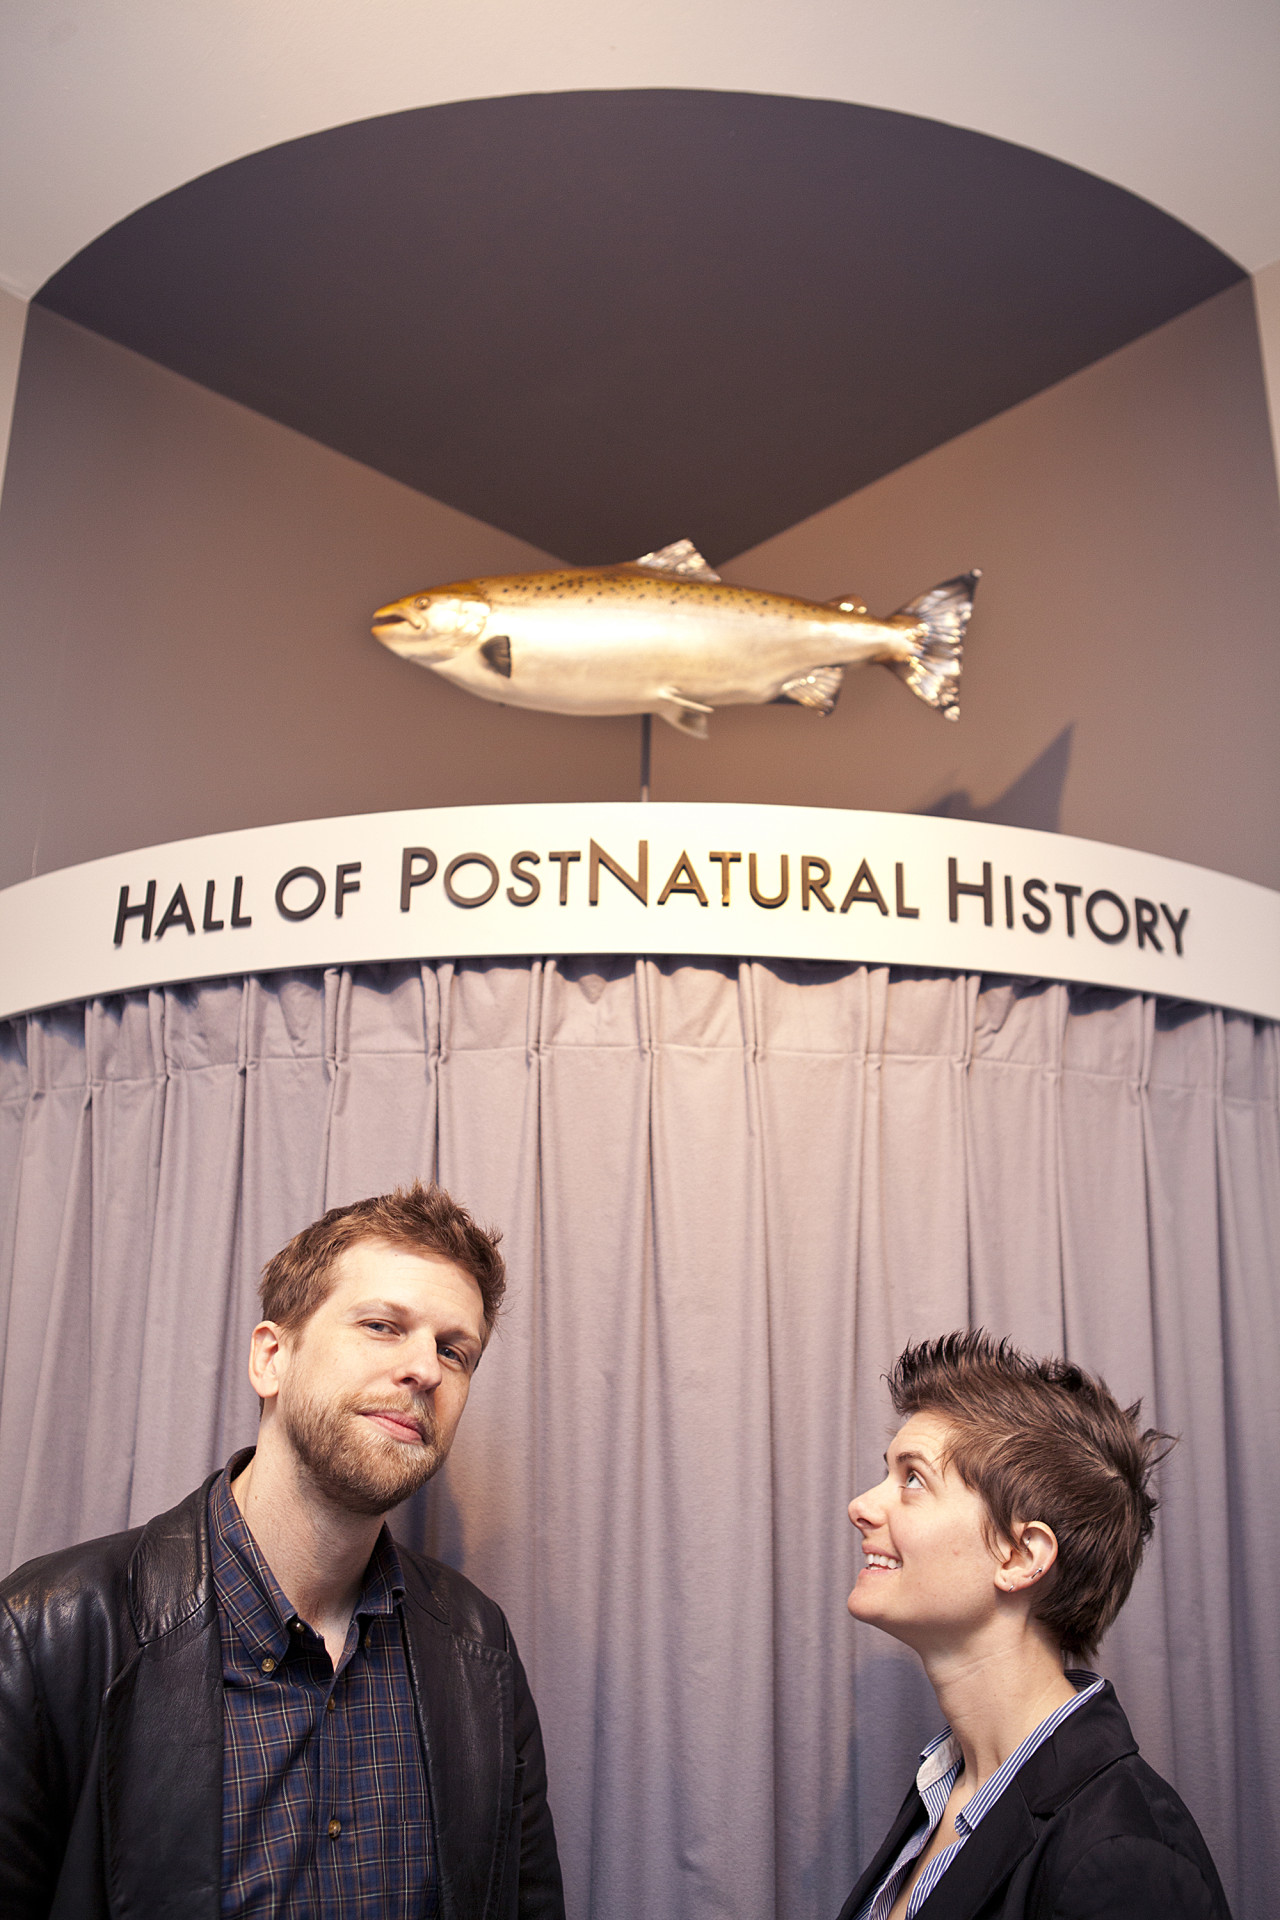 A Museum for Our Postnatural Age